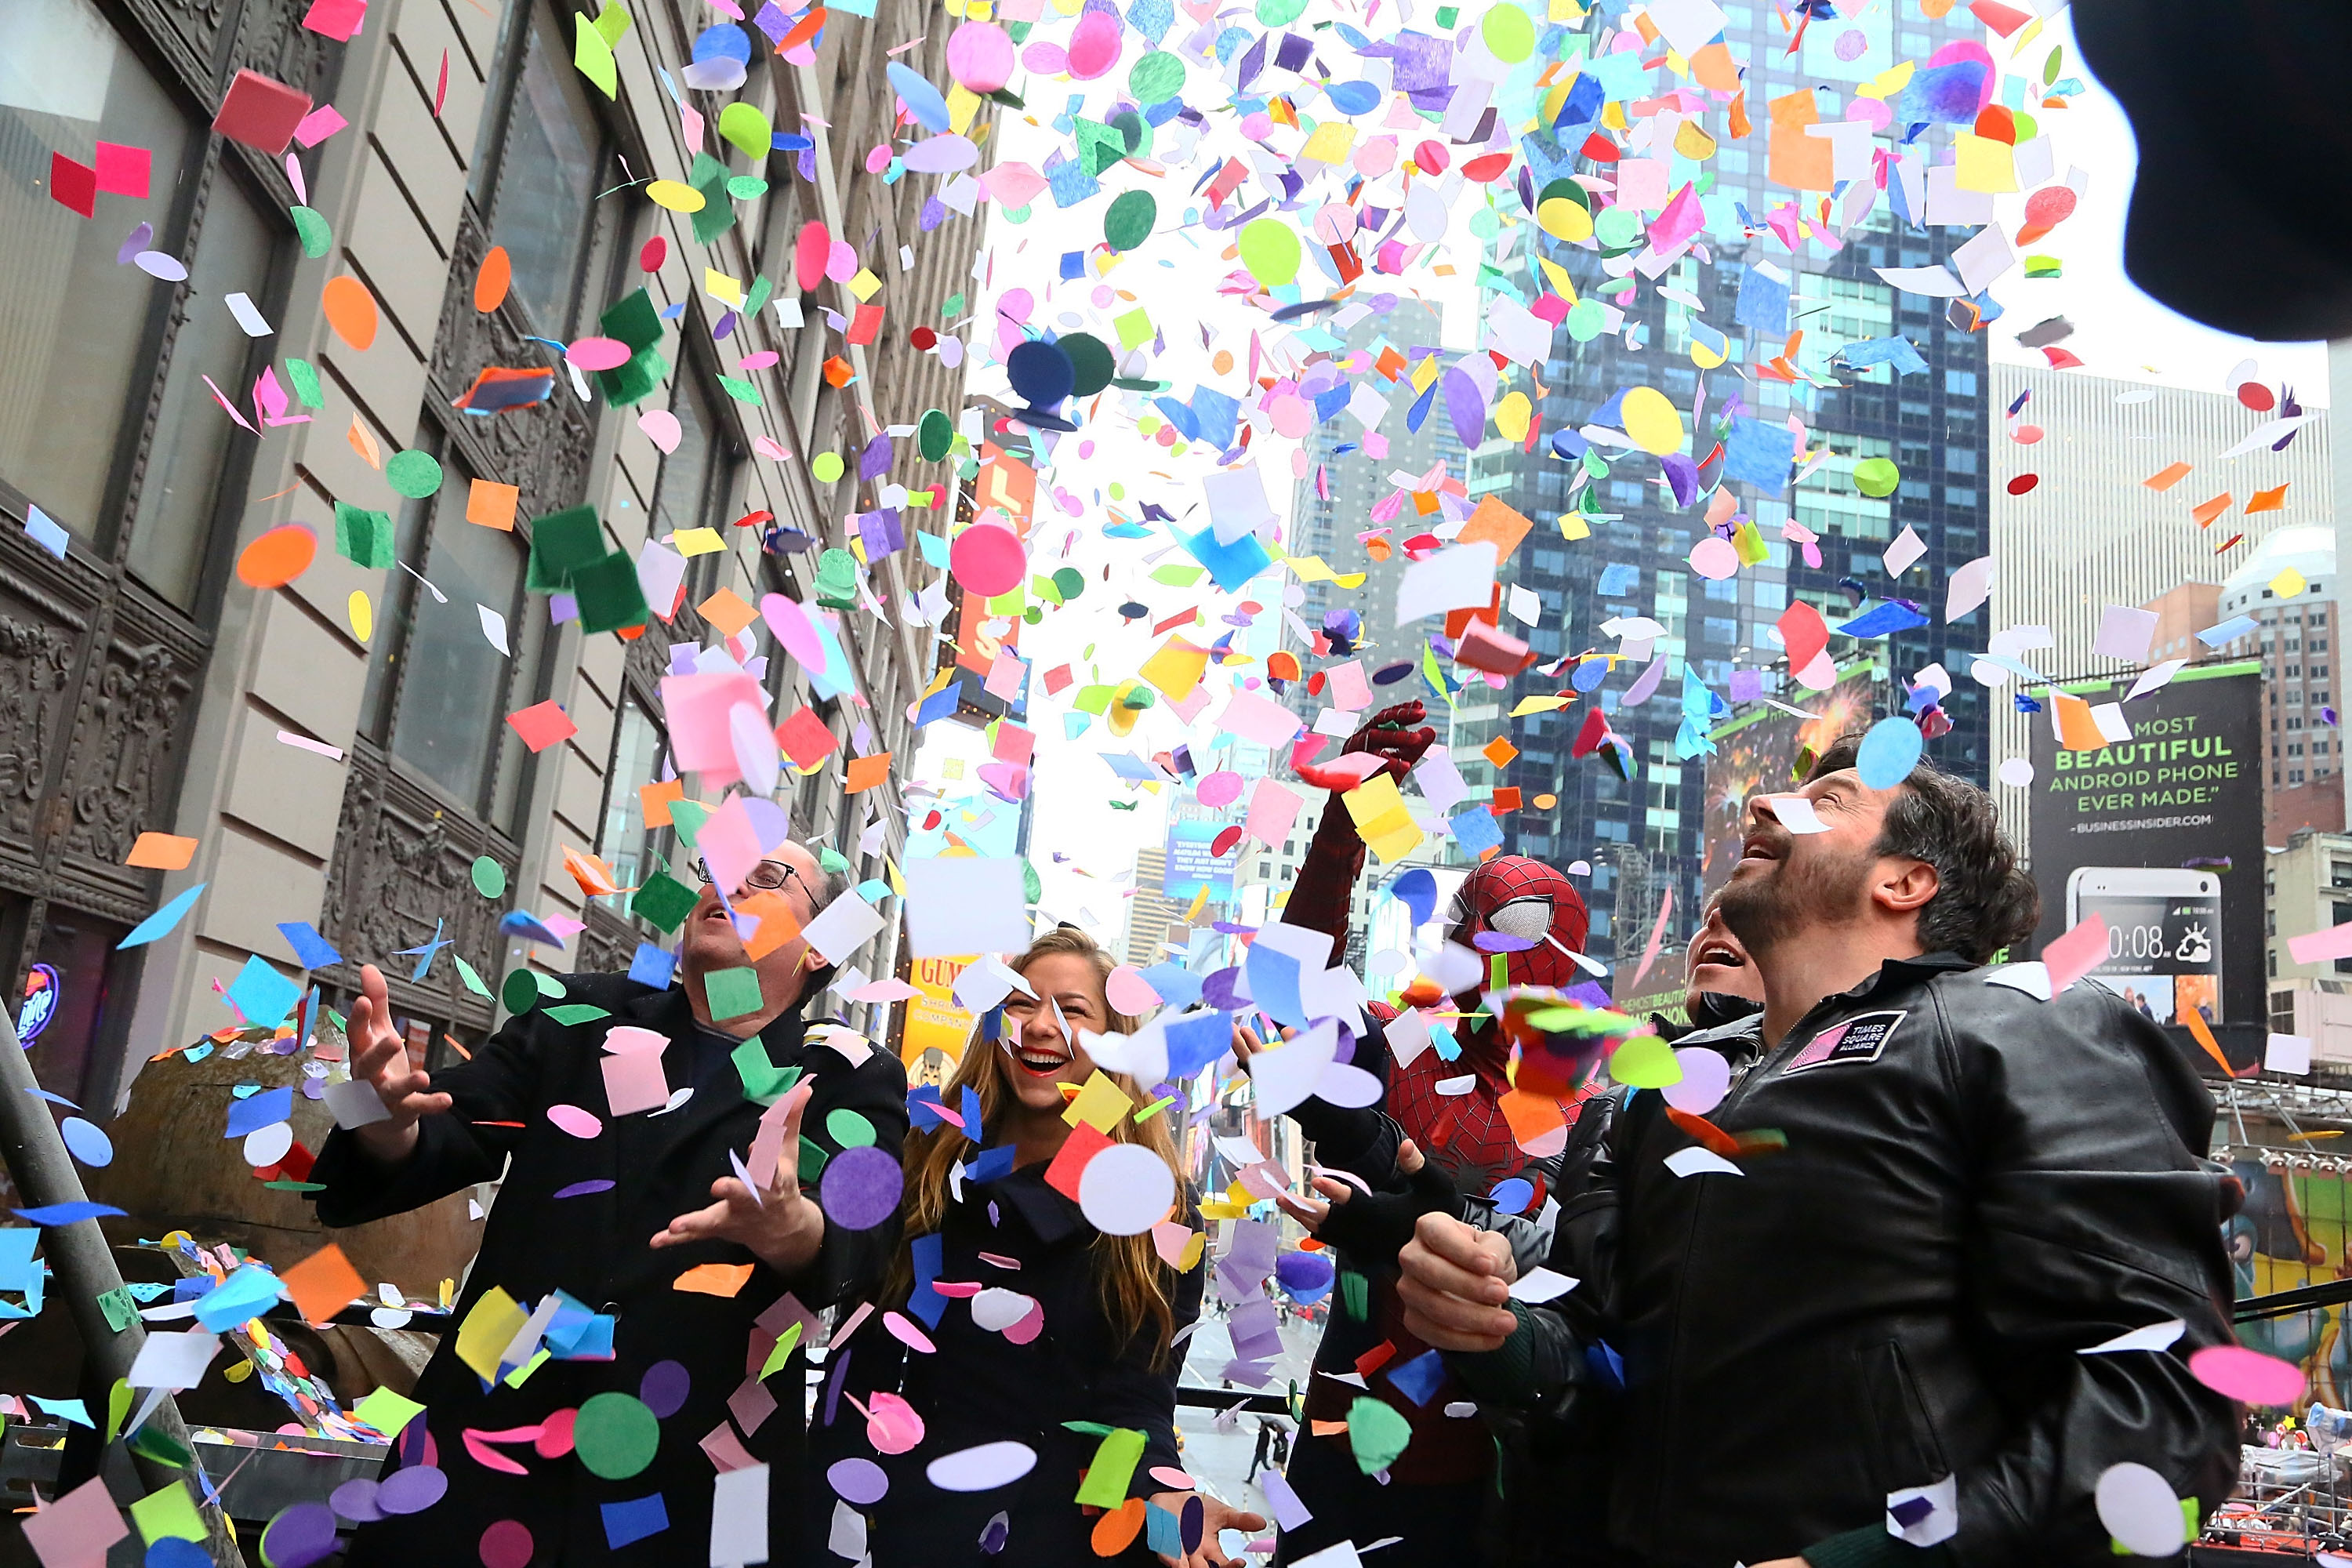 2014 New Year's Eve Confetti Test